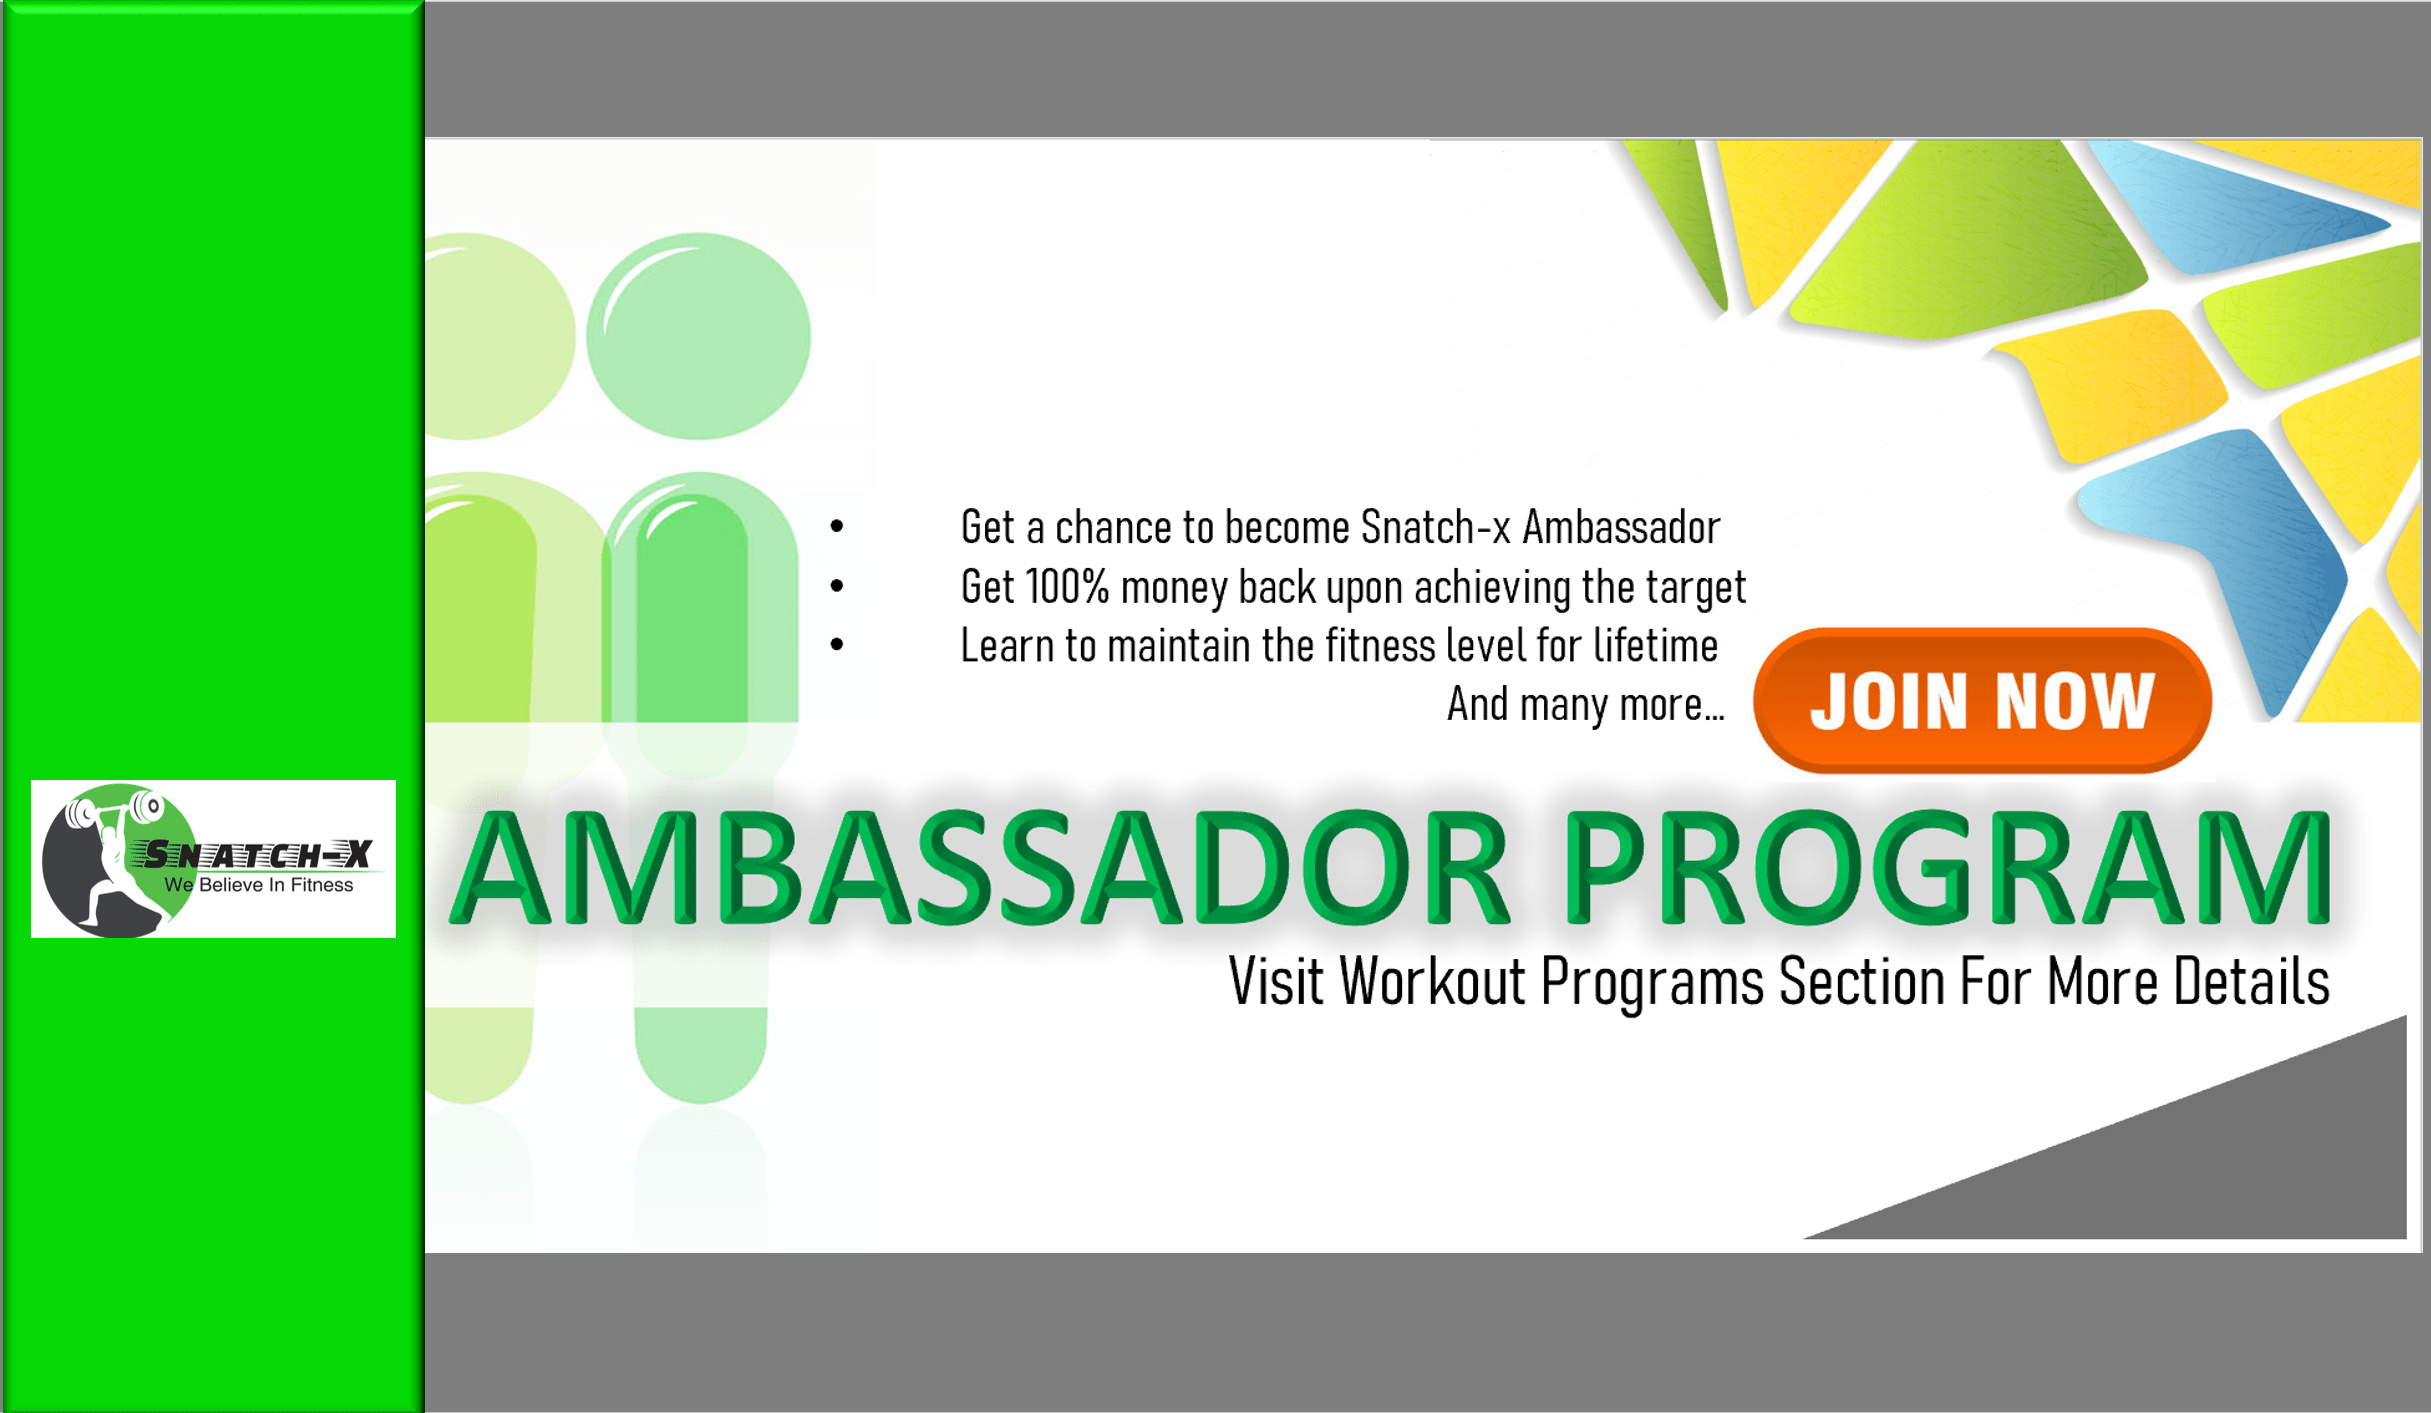 AMBASSADOR PROGRAM